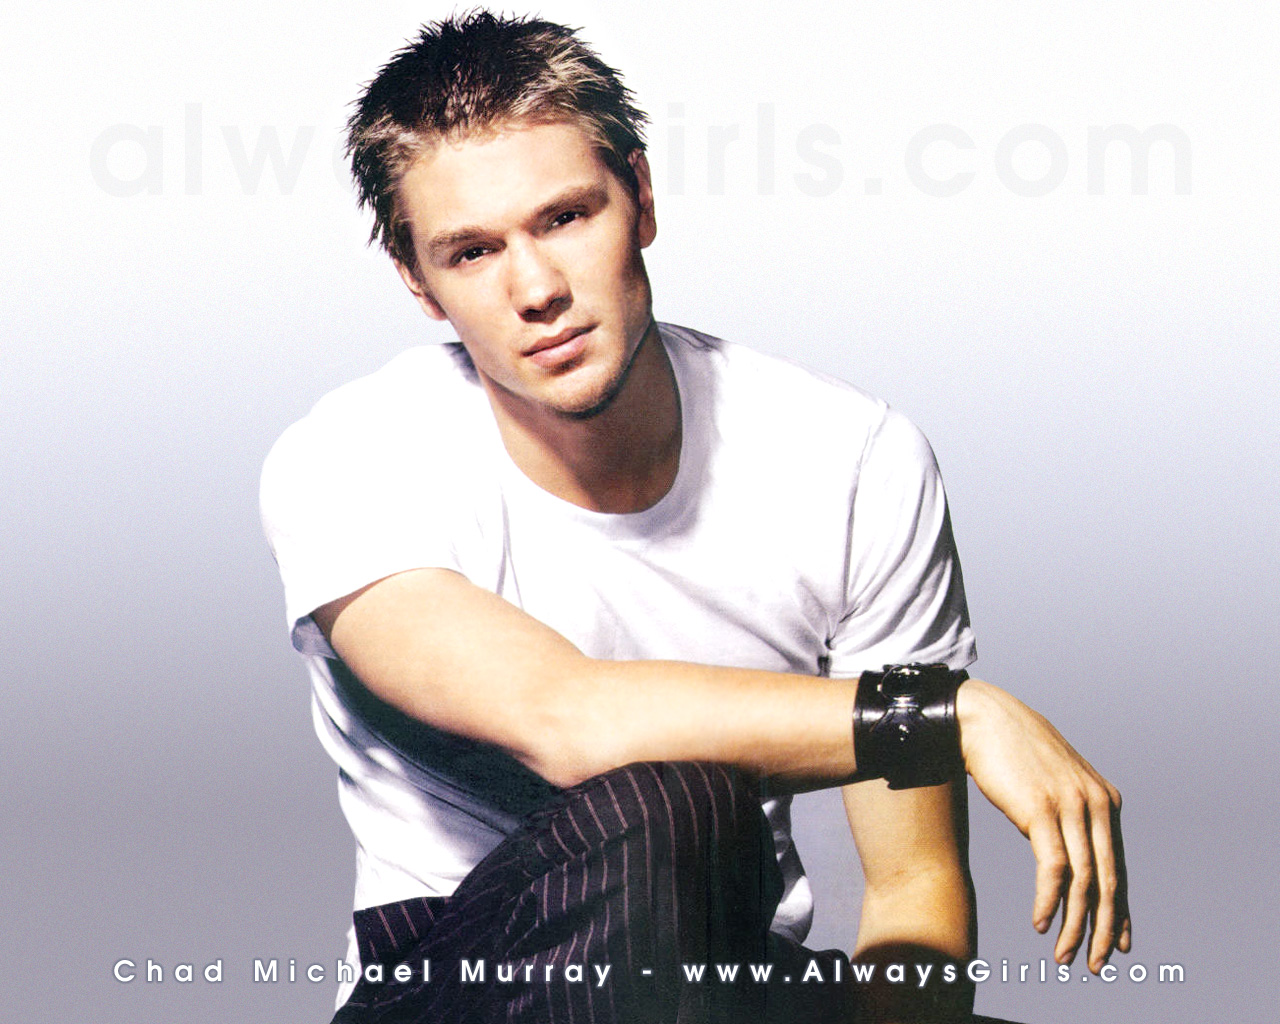 Chad - Chad Michael Murray Wallpaper (637987) - Fanpop